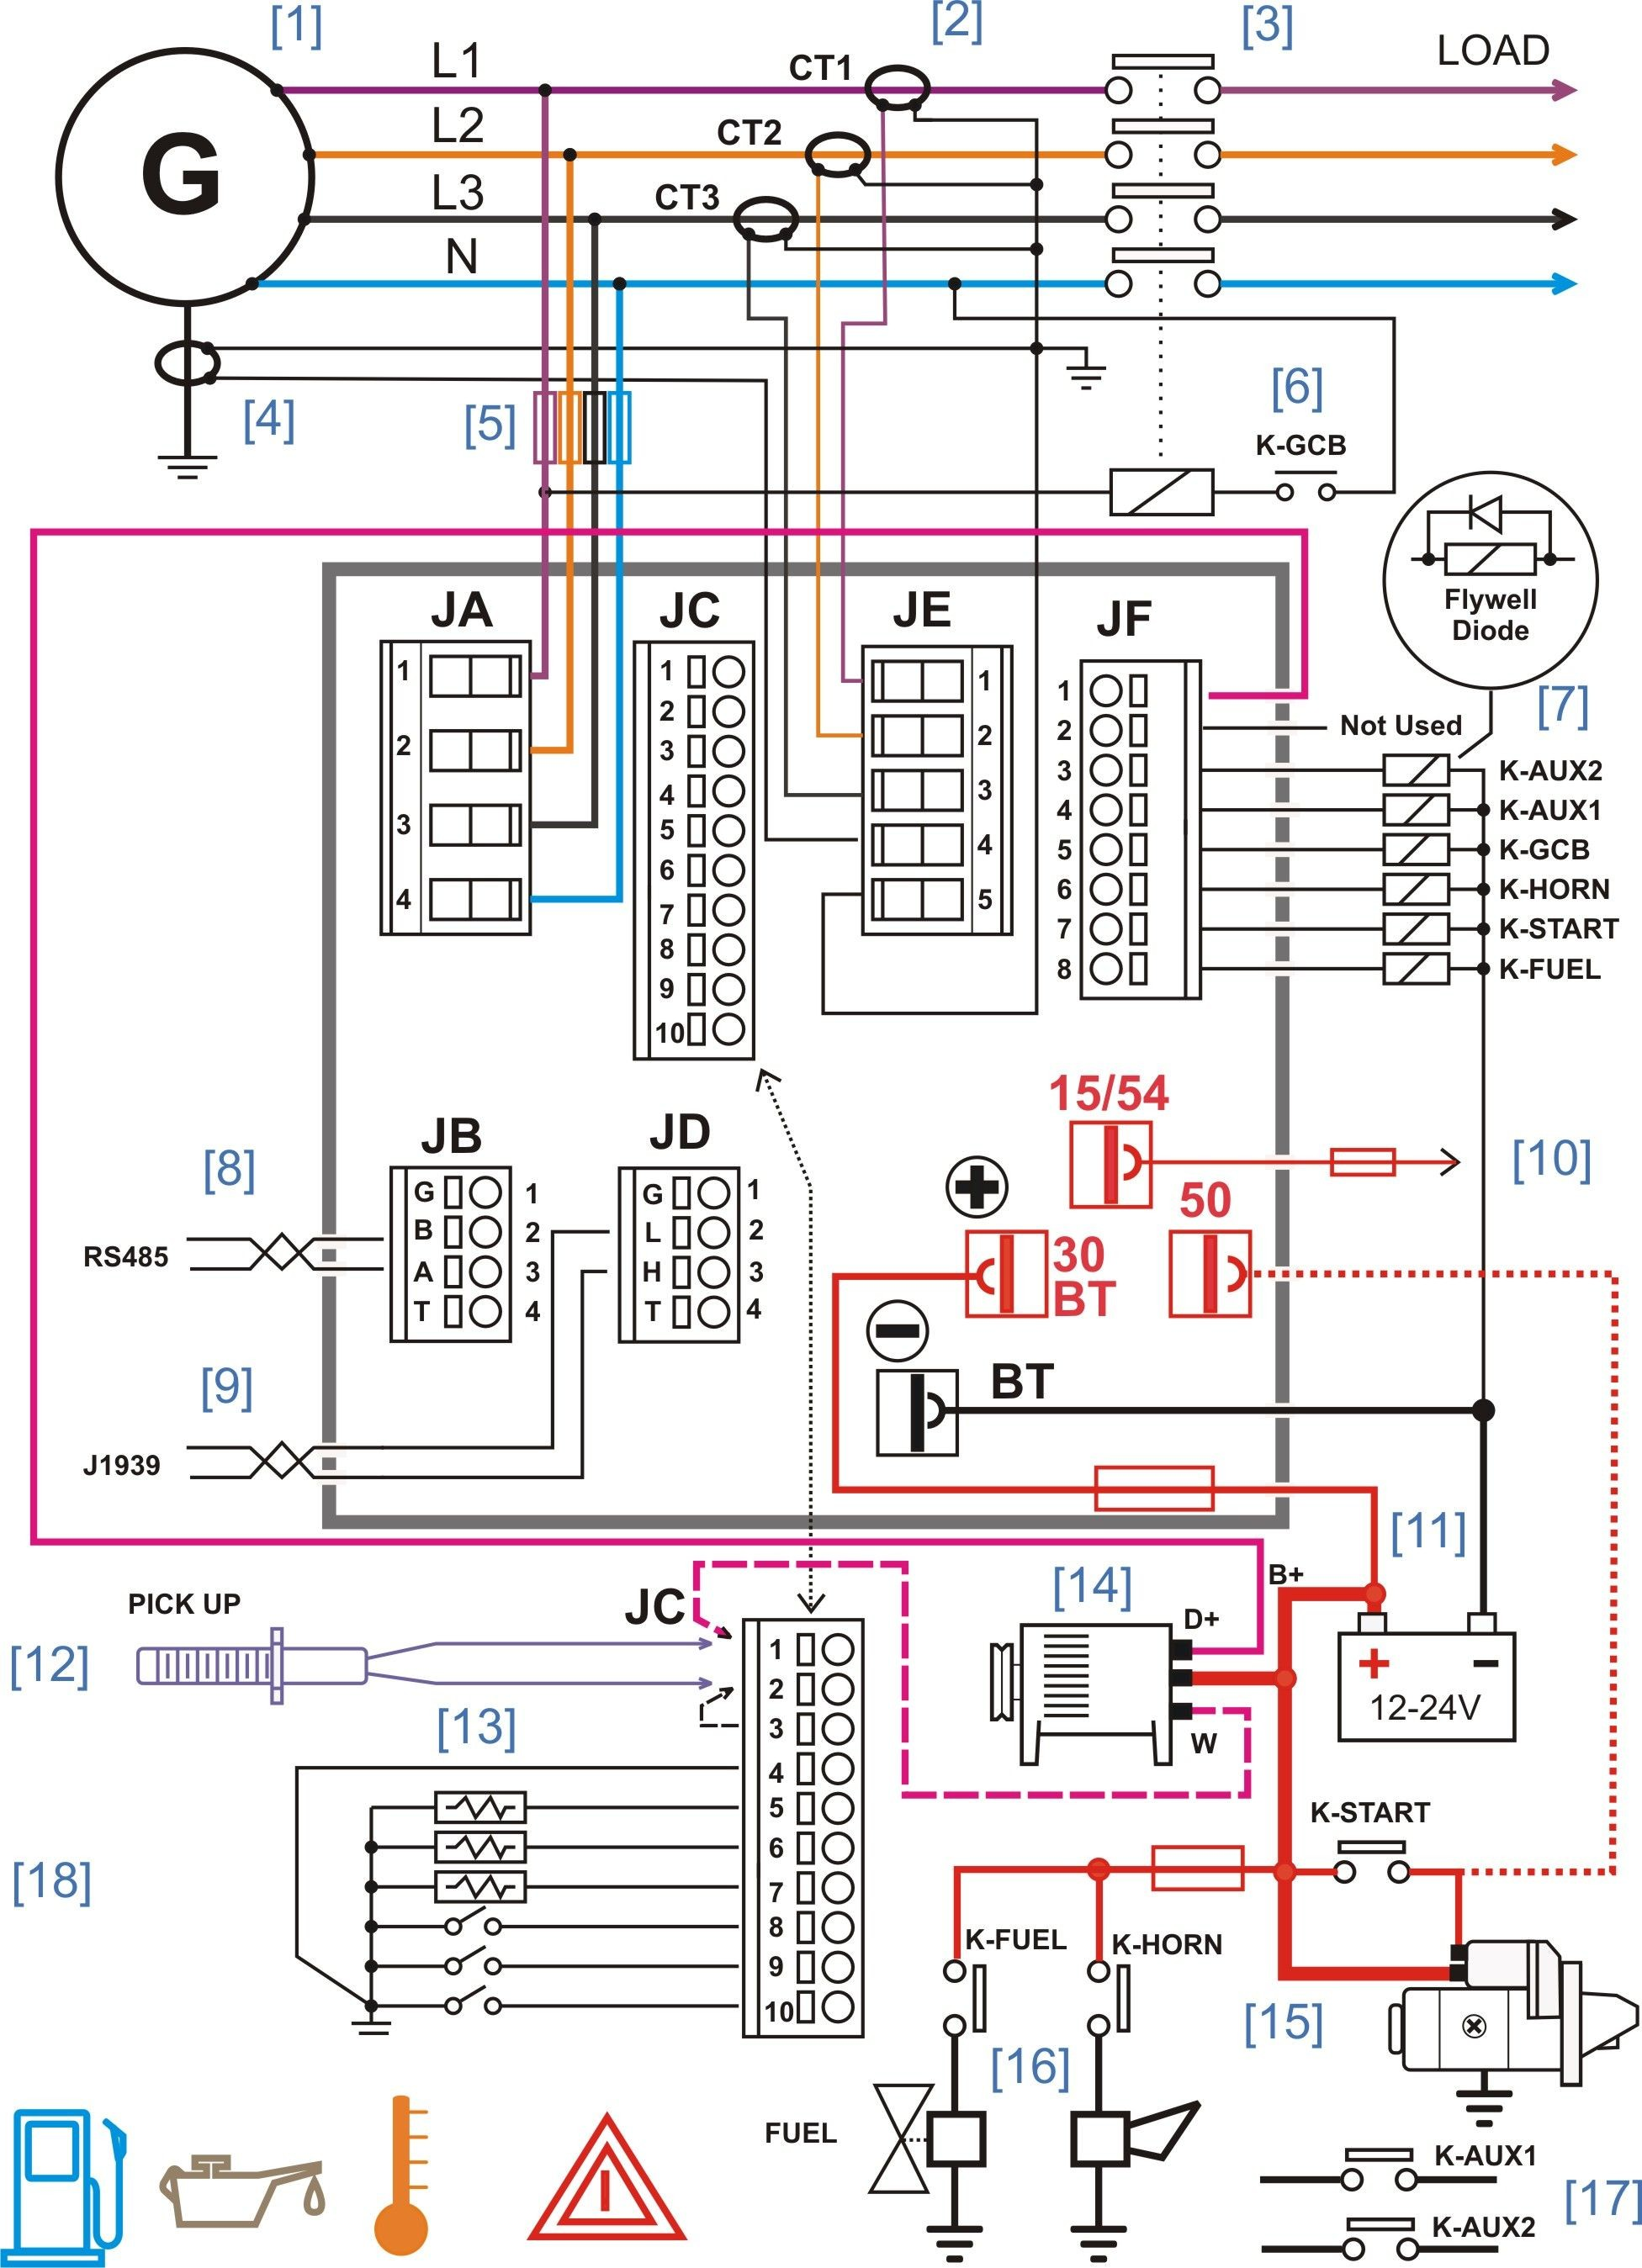 Solar Car Circuit Diagram solar Led Light Circuit Diagrams Car Light on switch panel wiring diagram, control panel wiring diagram, distribution panel wiring diagram, lighting panel wiring diagram,